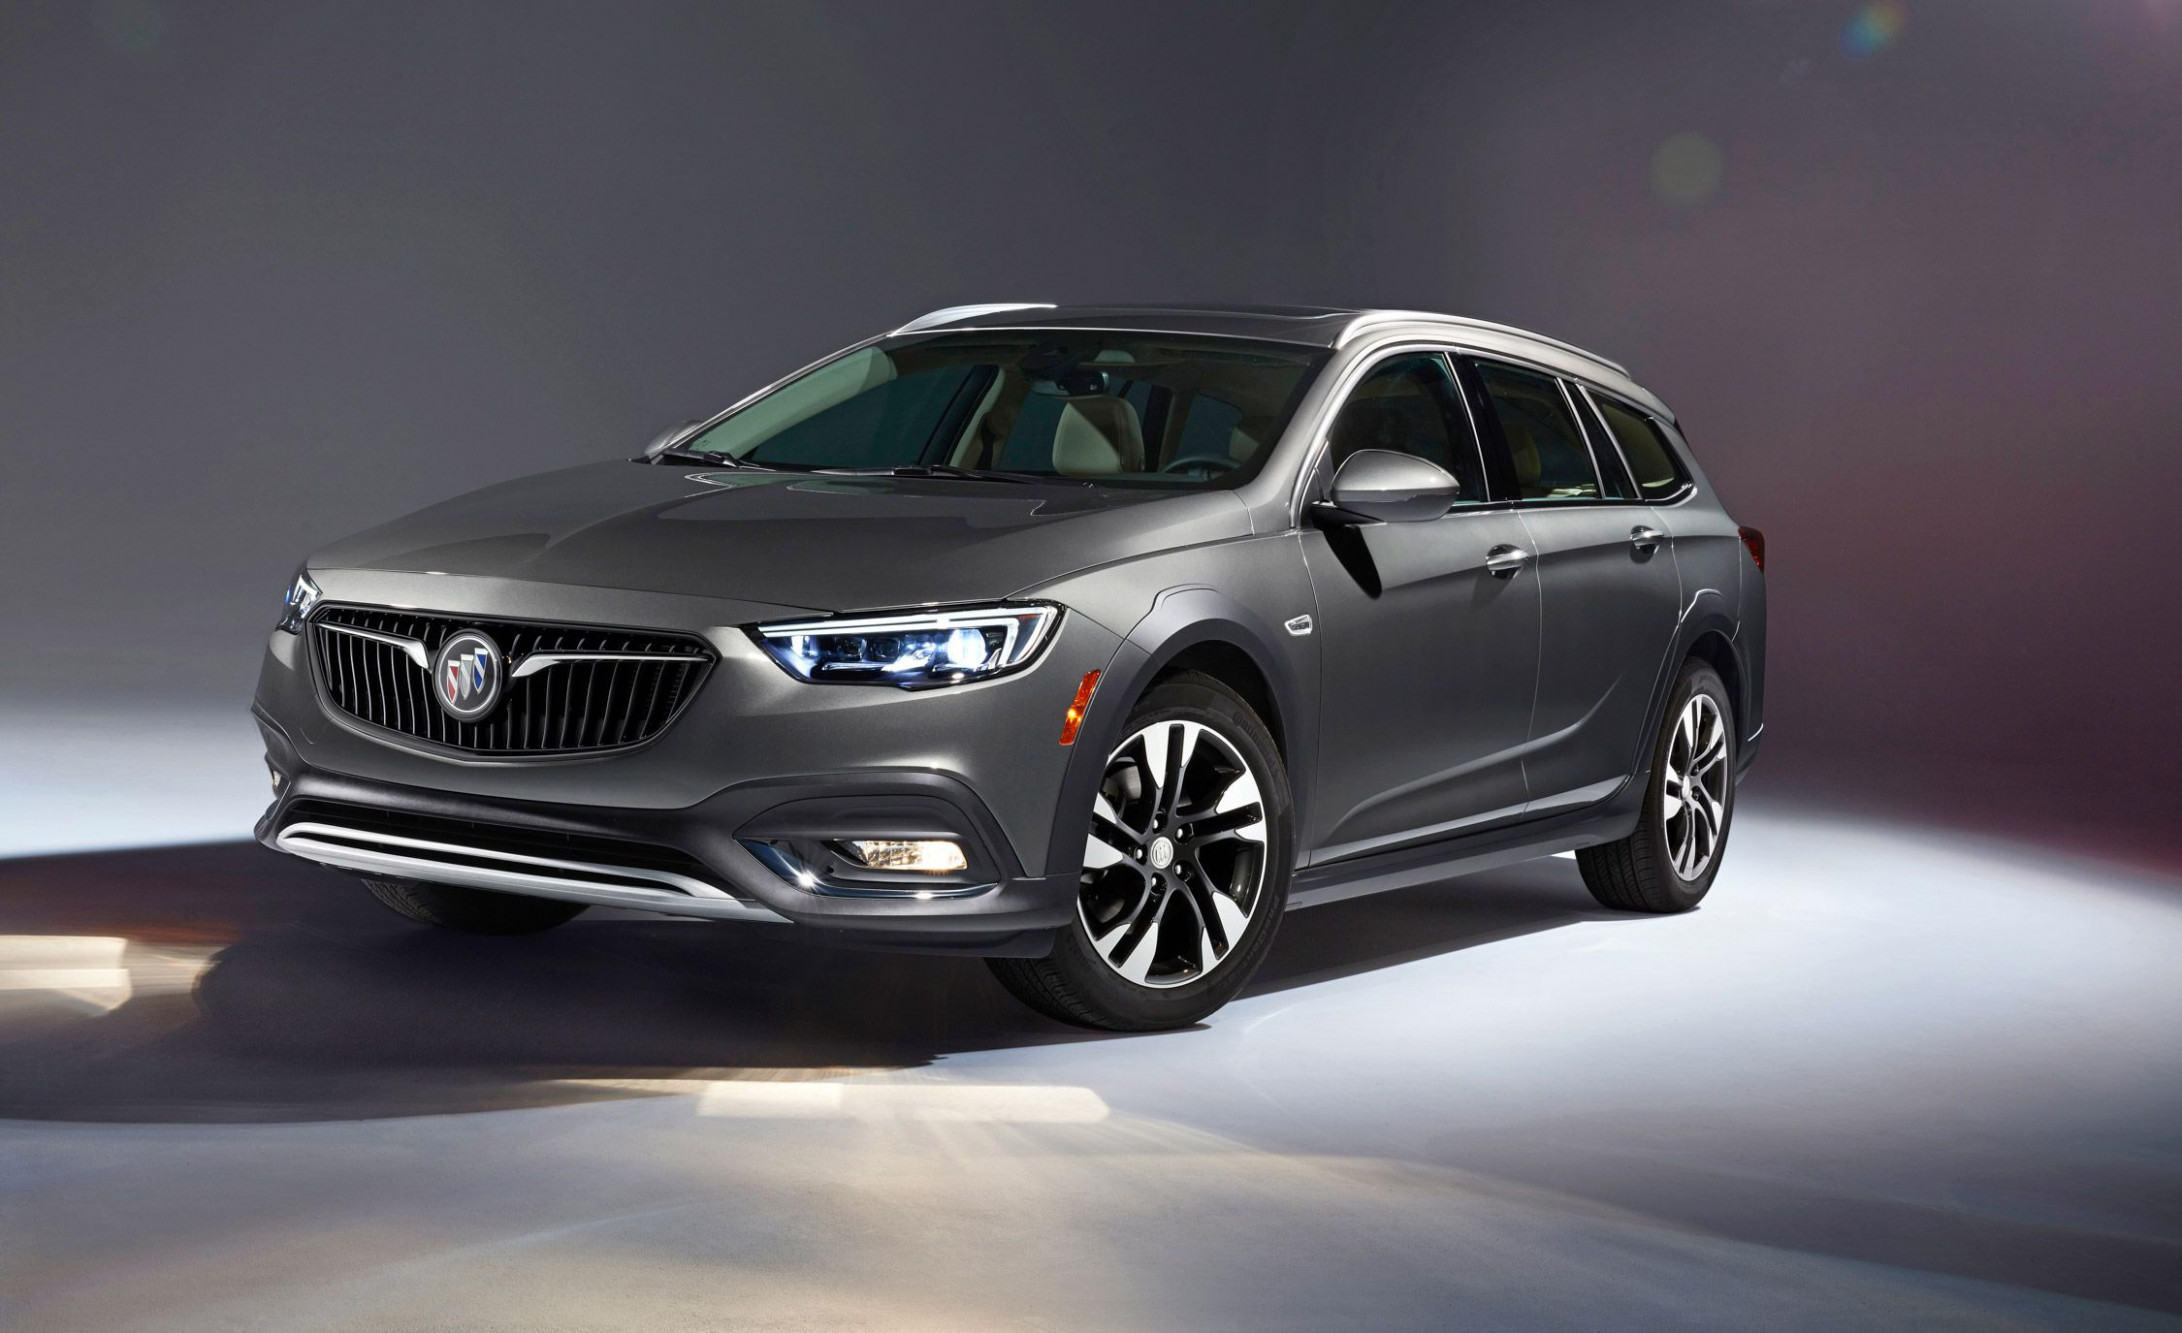 Release 2022 Buick Regal Wagon